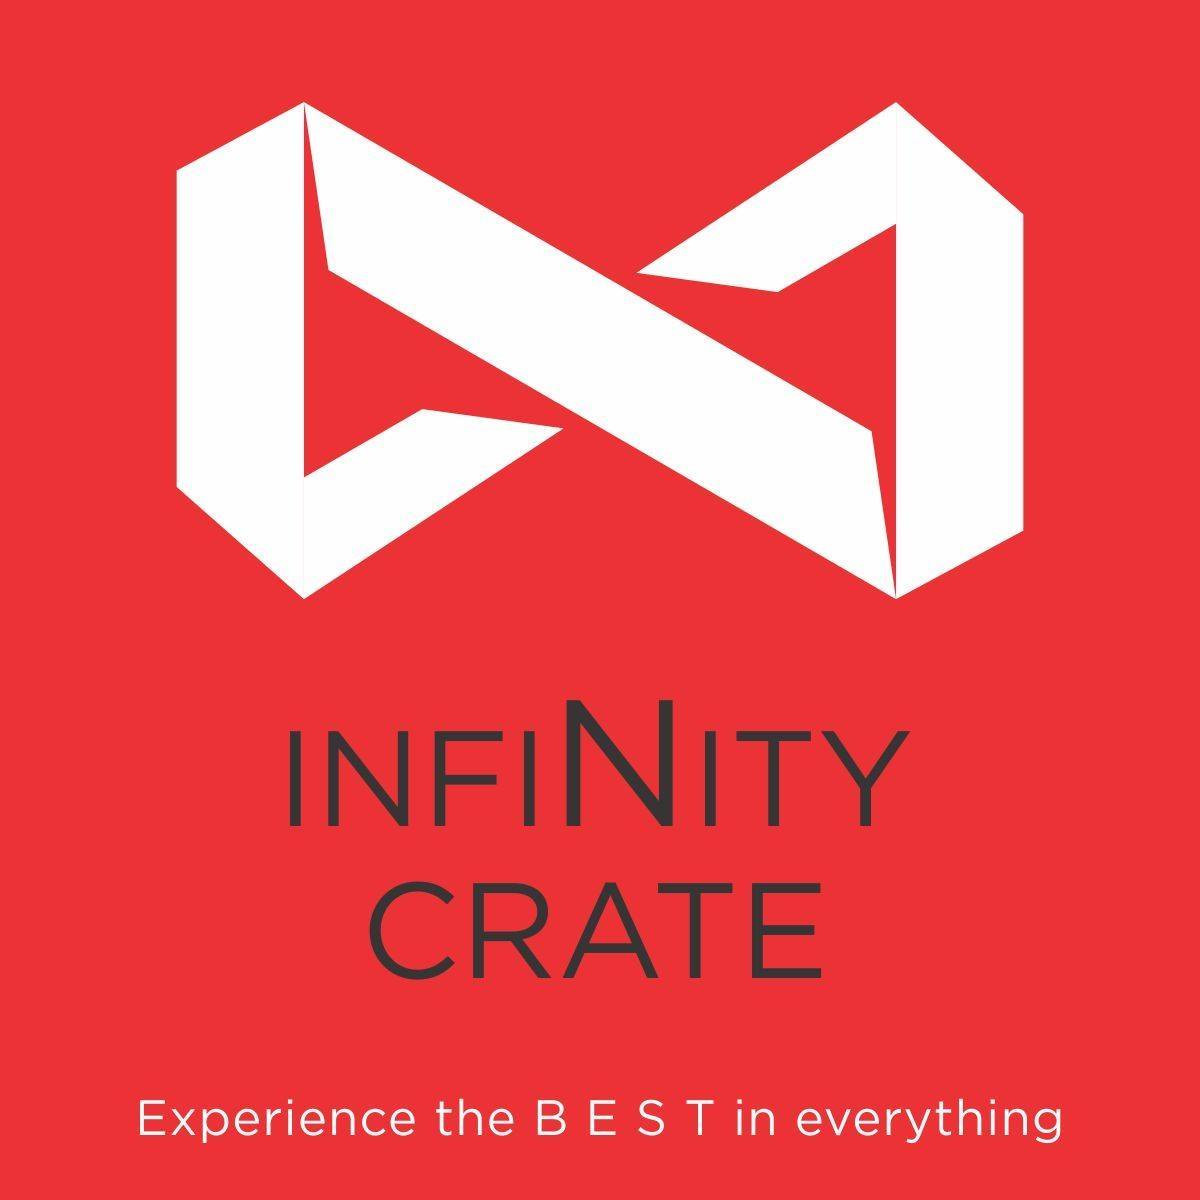 Infinity Crate